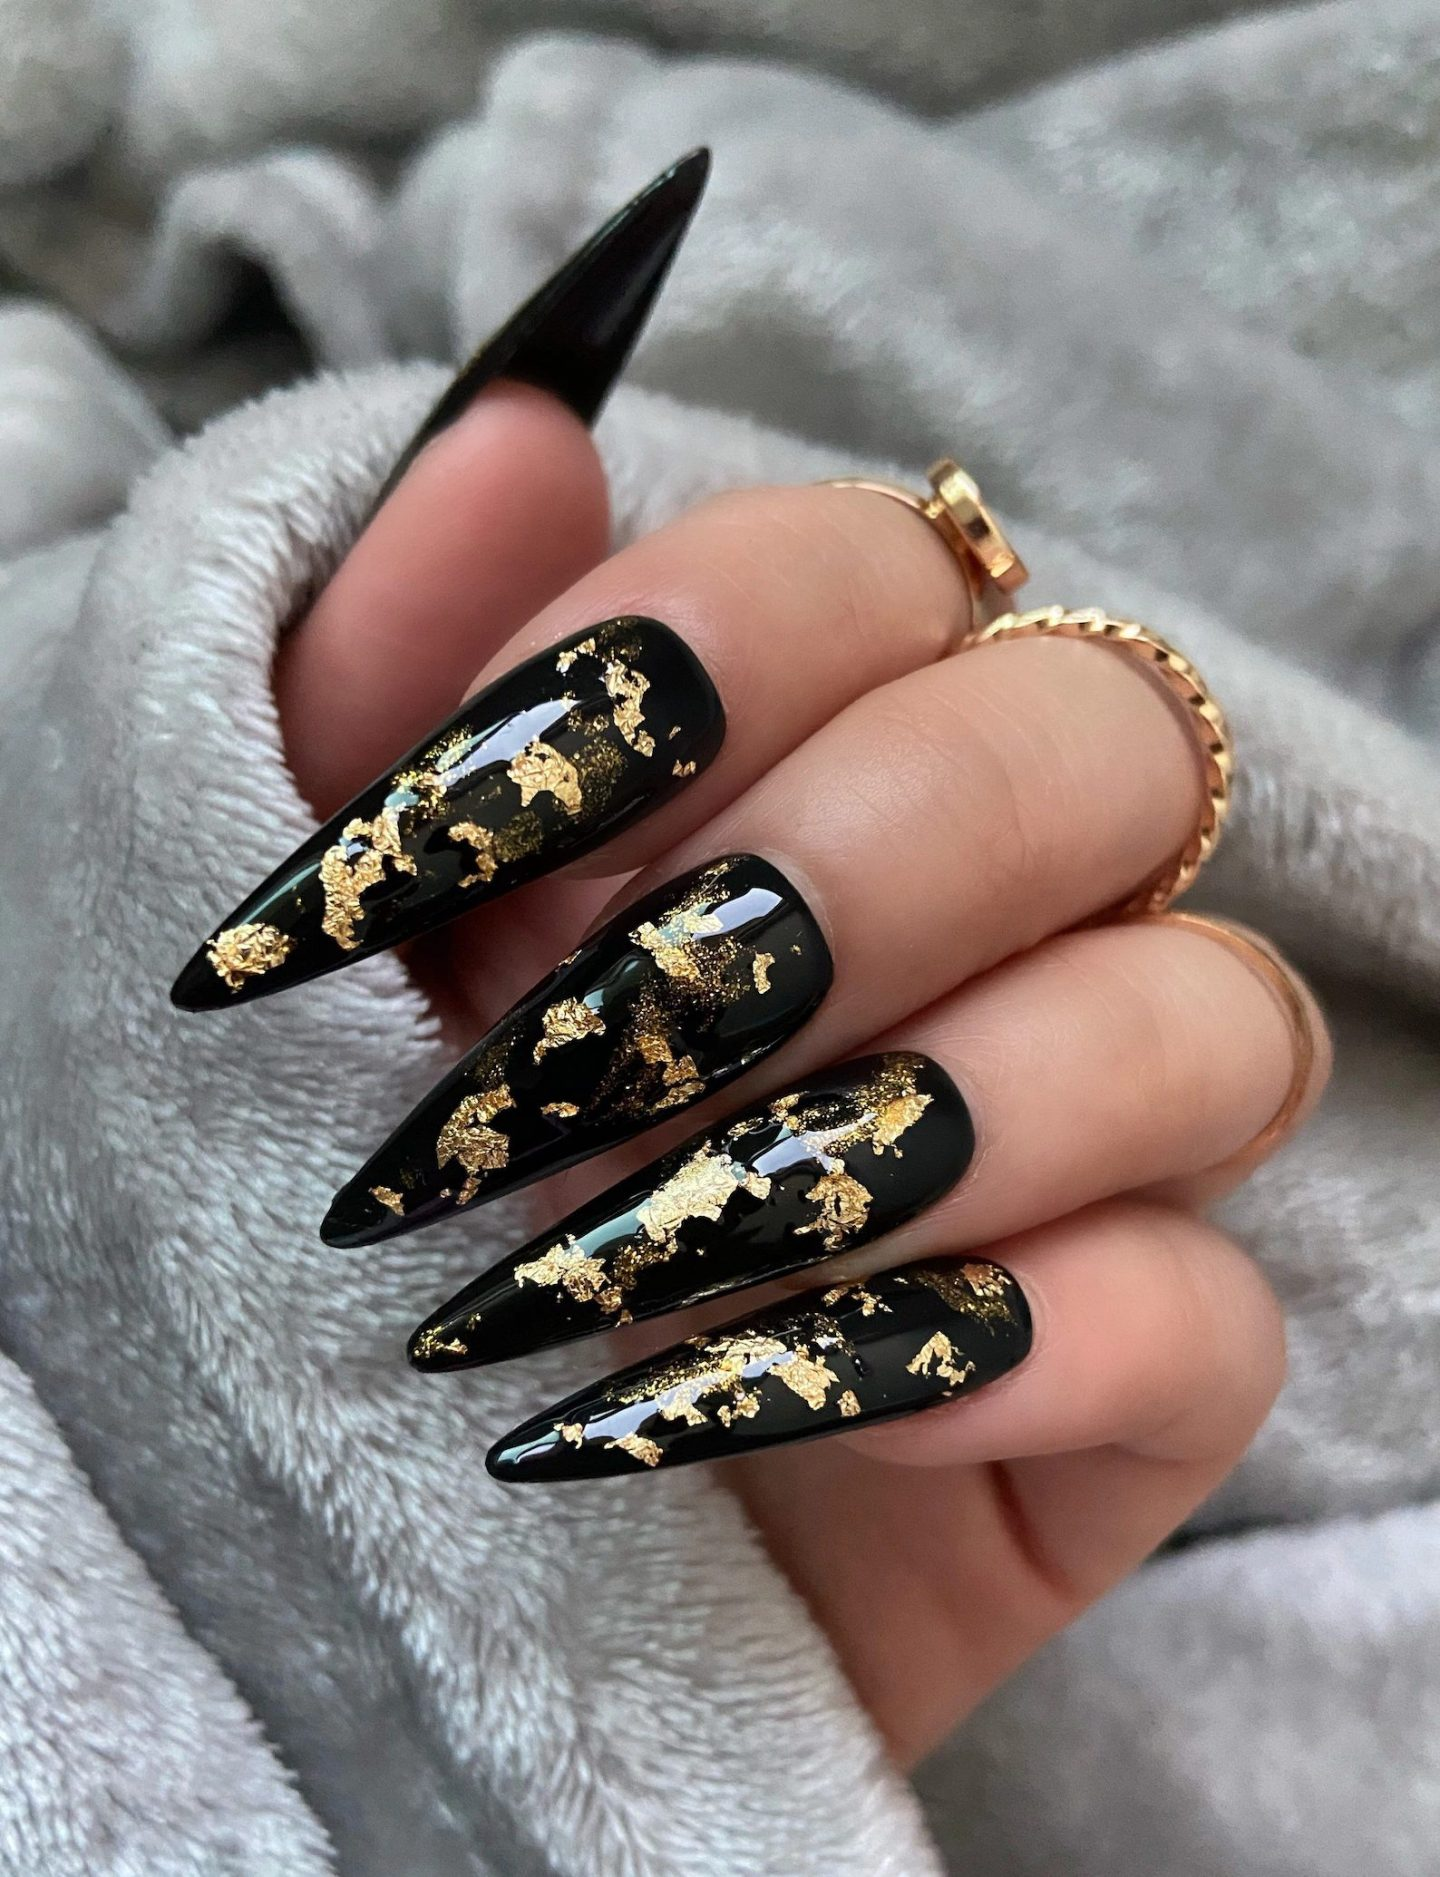 Cute long black stiletto nails with gold foil